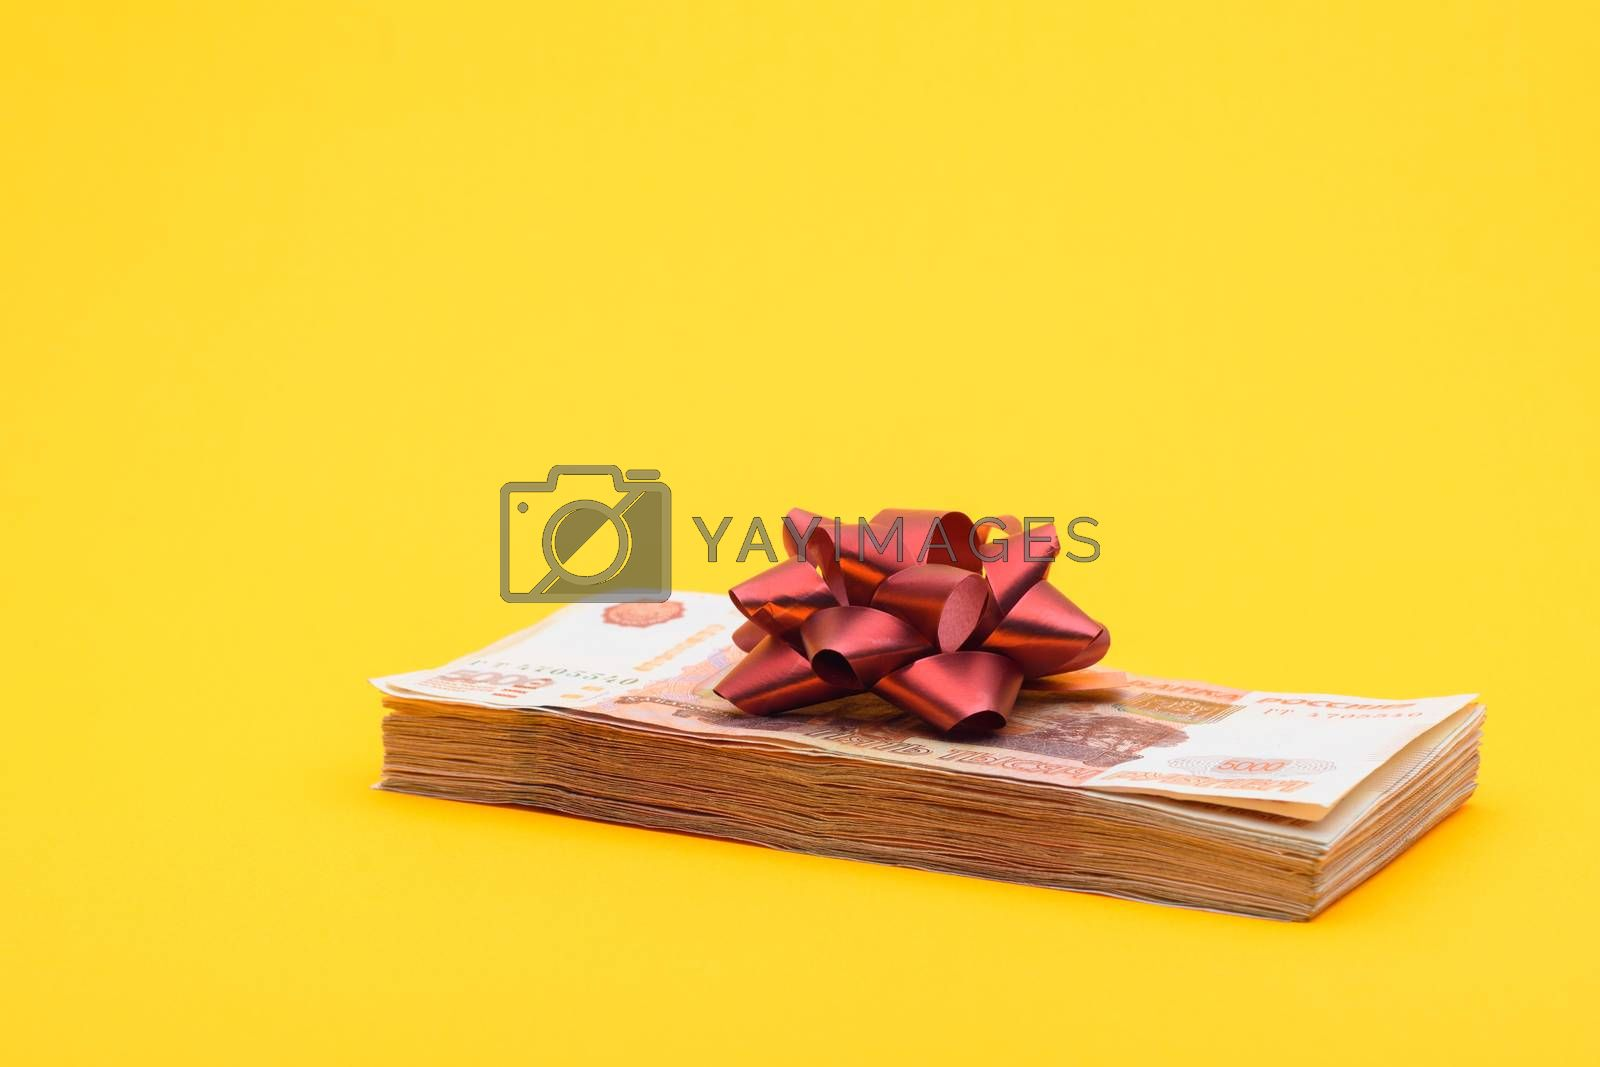 On the bundle of five thousandth bills lies a red bow, yellow background